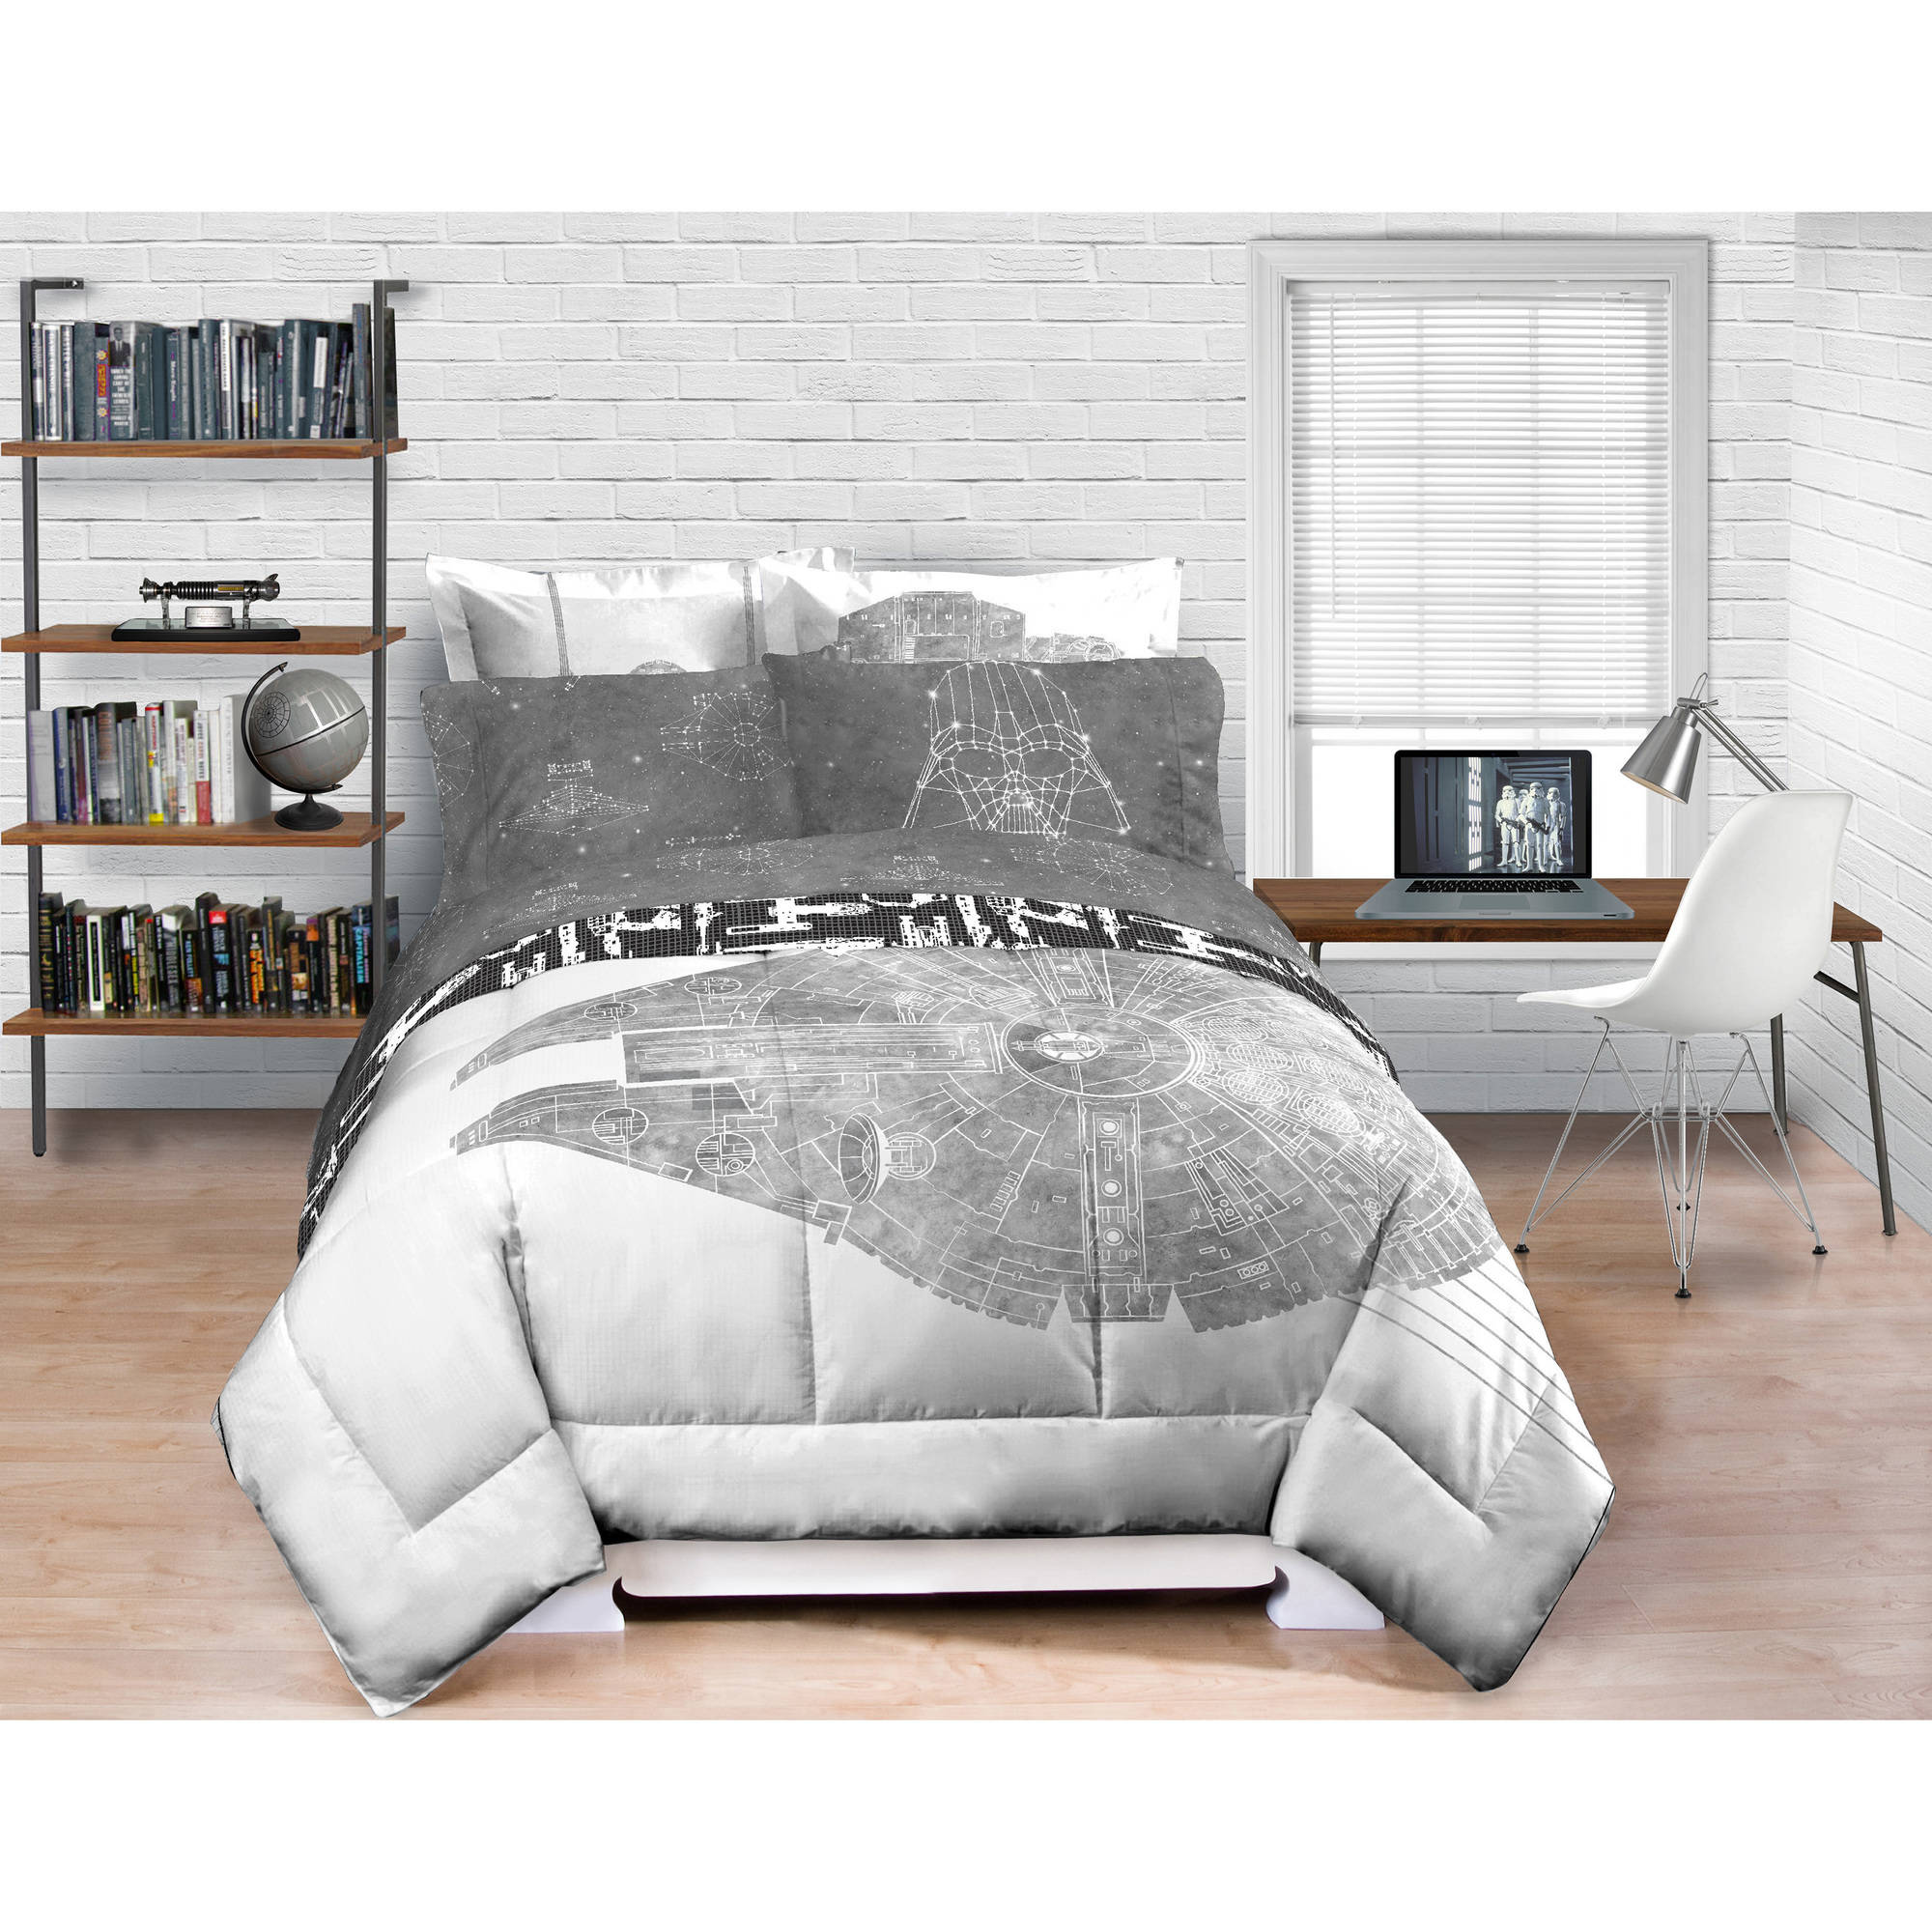 bedroom accessories fabulous theme trends paint colors charming star set pictures and wars rug luxury decor